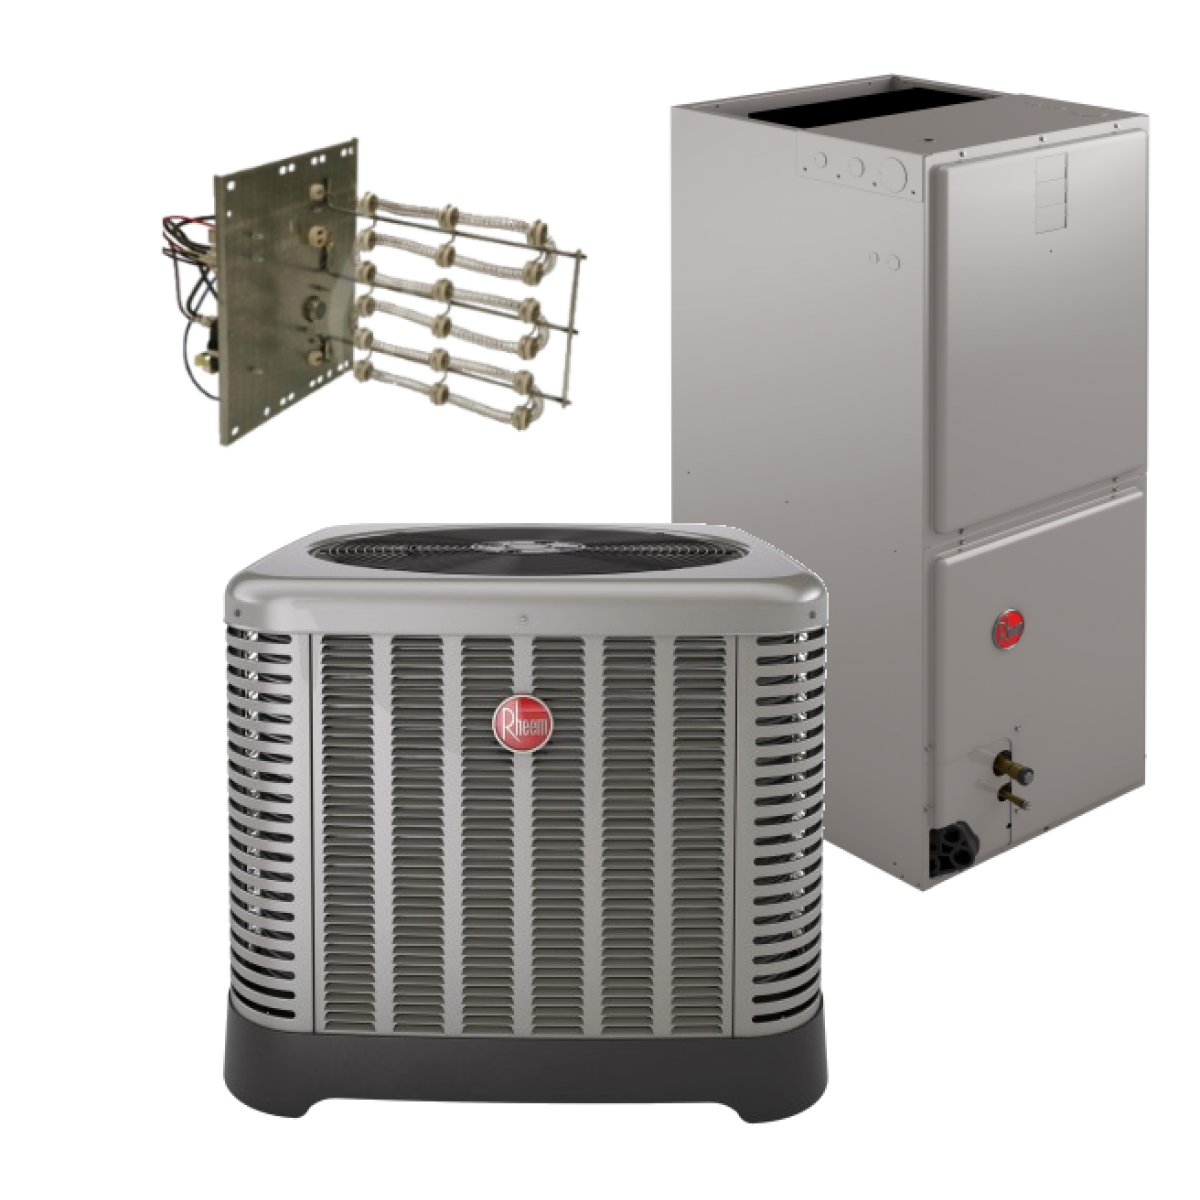 rheem 15 seer 4 ton heat pump system. Black Bedroom Furniture Sets. Home Design Ideas